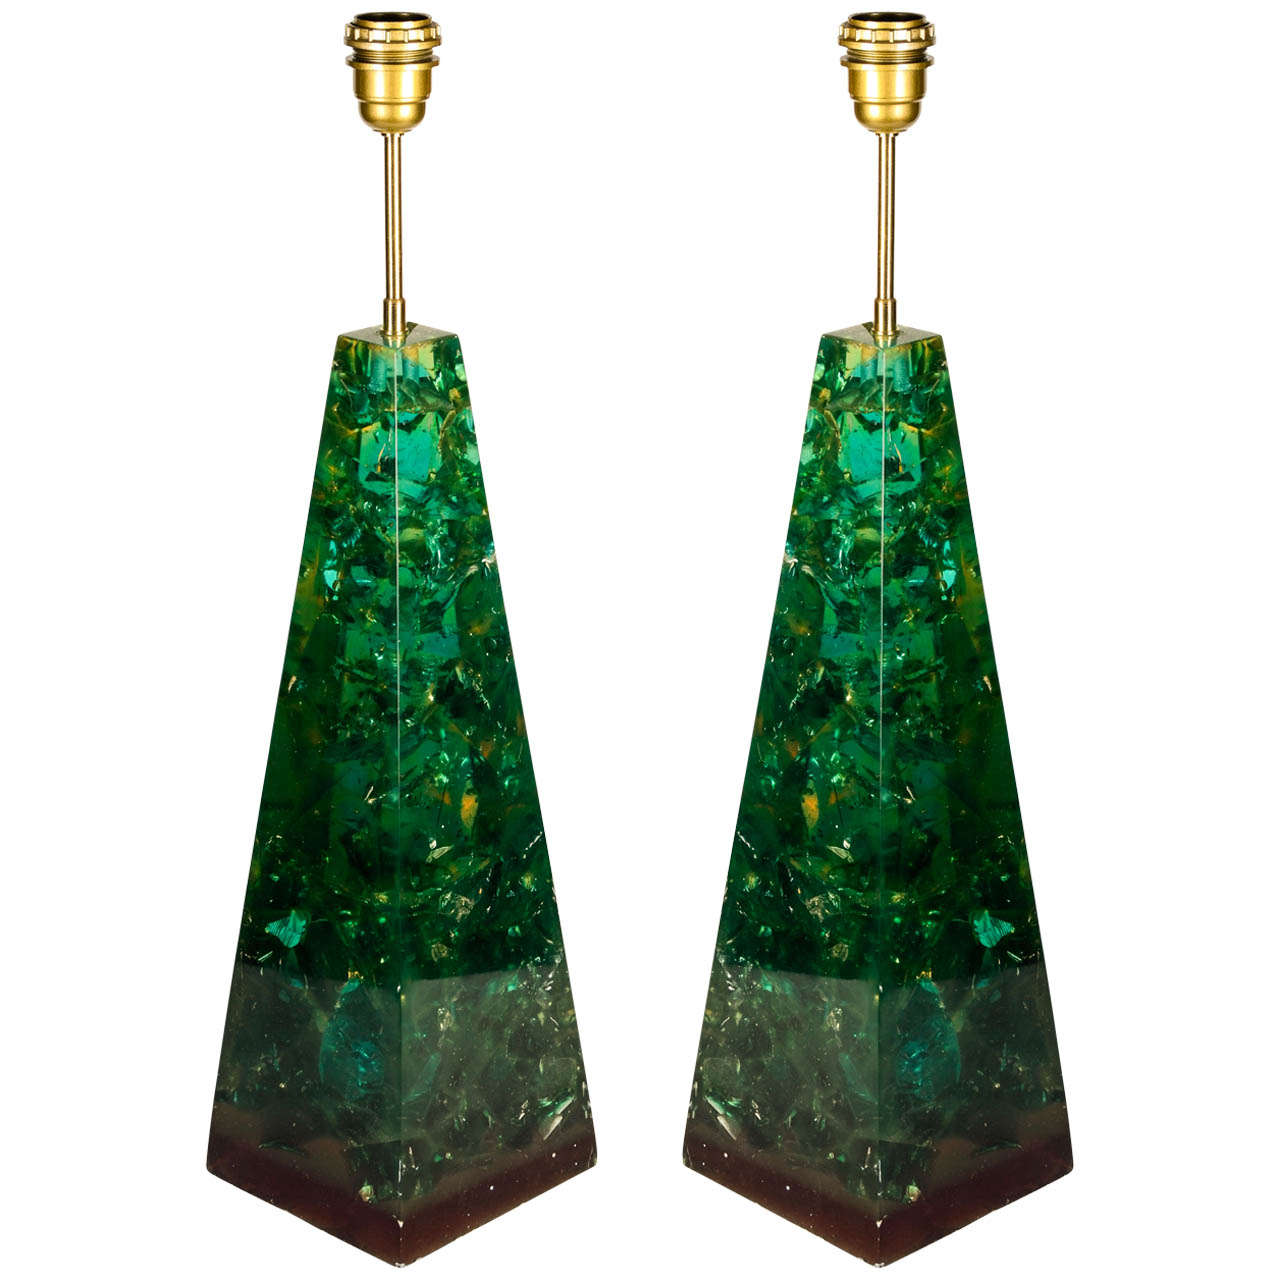 Pair of Resin Table Lamps by Marie Claude de Fouquieres at 1stdibs